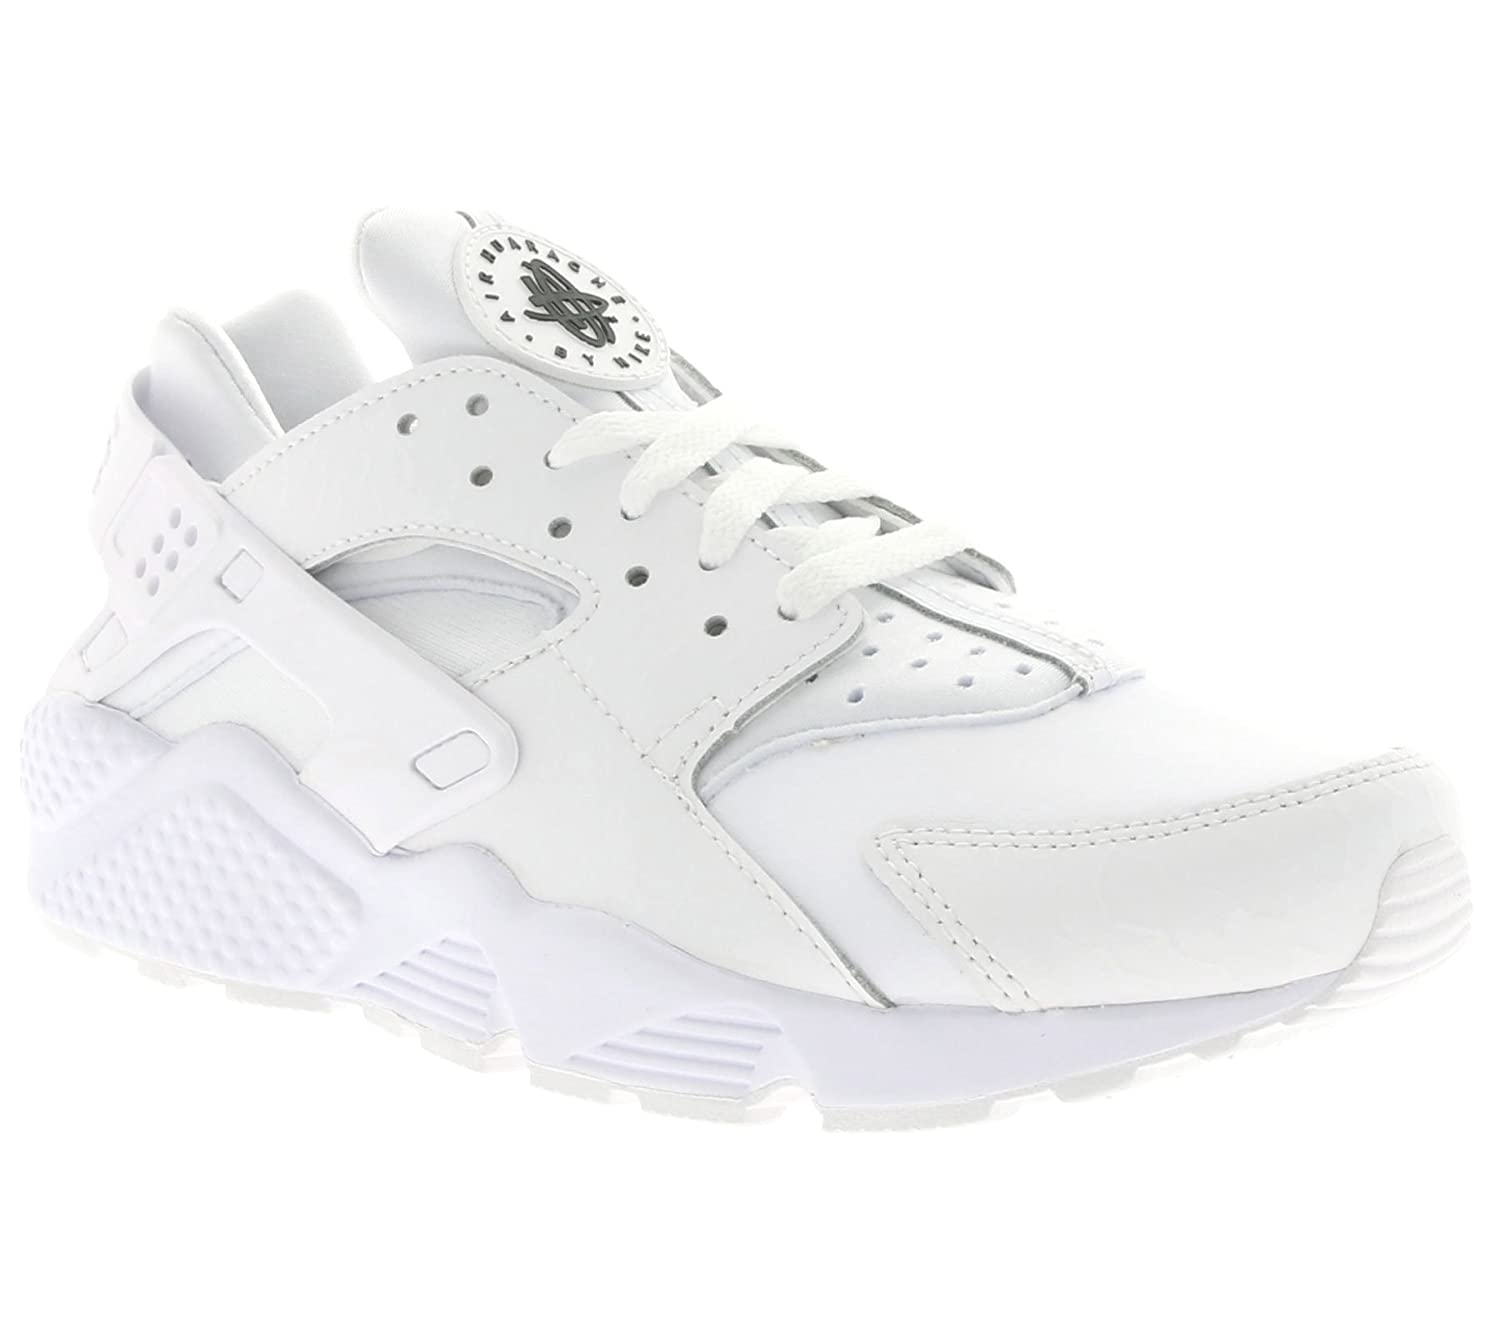 NIKE Air Huarache Run PRM Mens B01DD8CYXQ 13 D(M) US